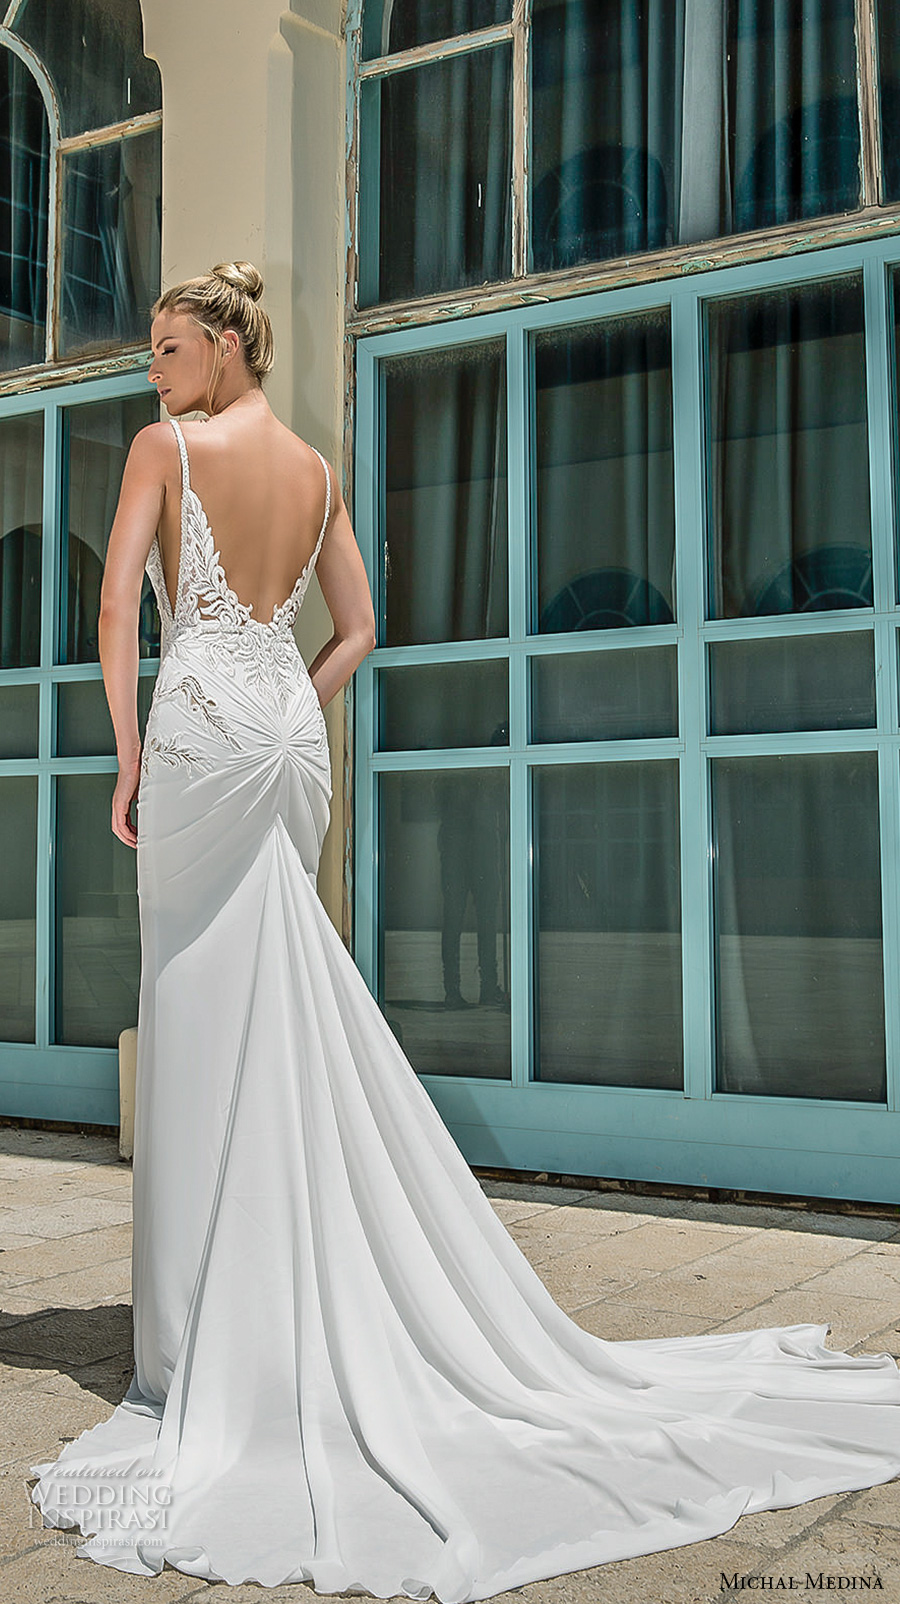 michal medina 2017 bridal spagetti strap deep plunging sweetheart neckline heavily embellished bodice elegant sheath wedding dress open low back chapel train (dianne) bv